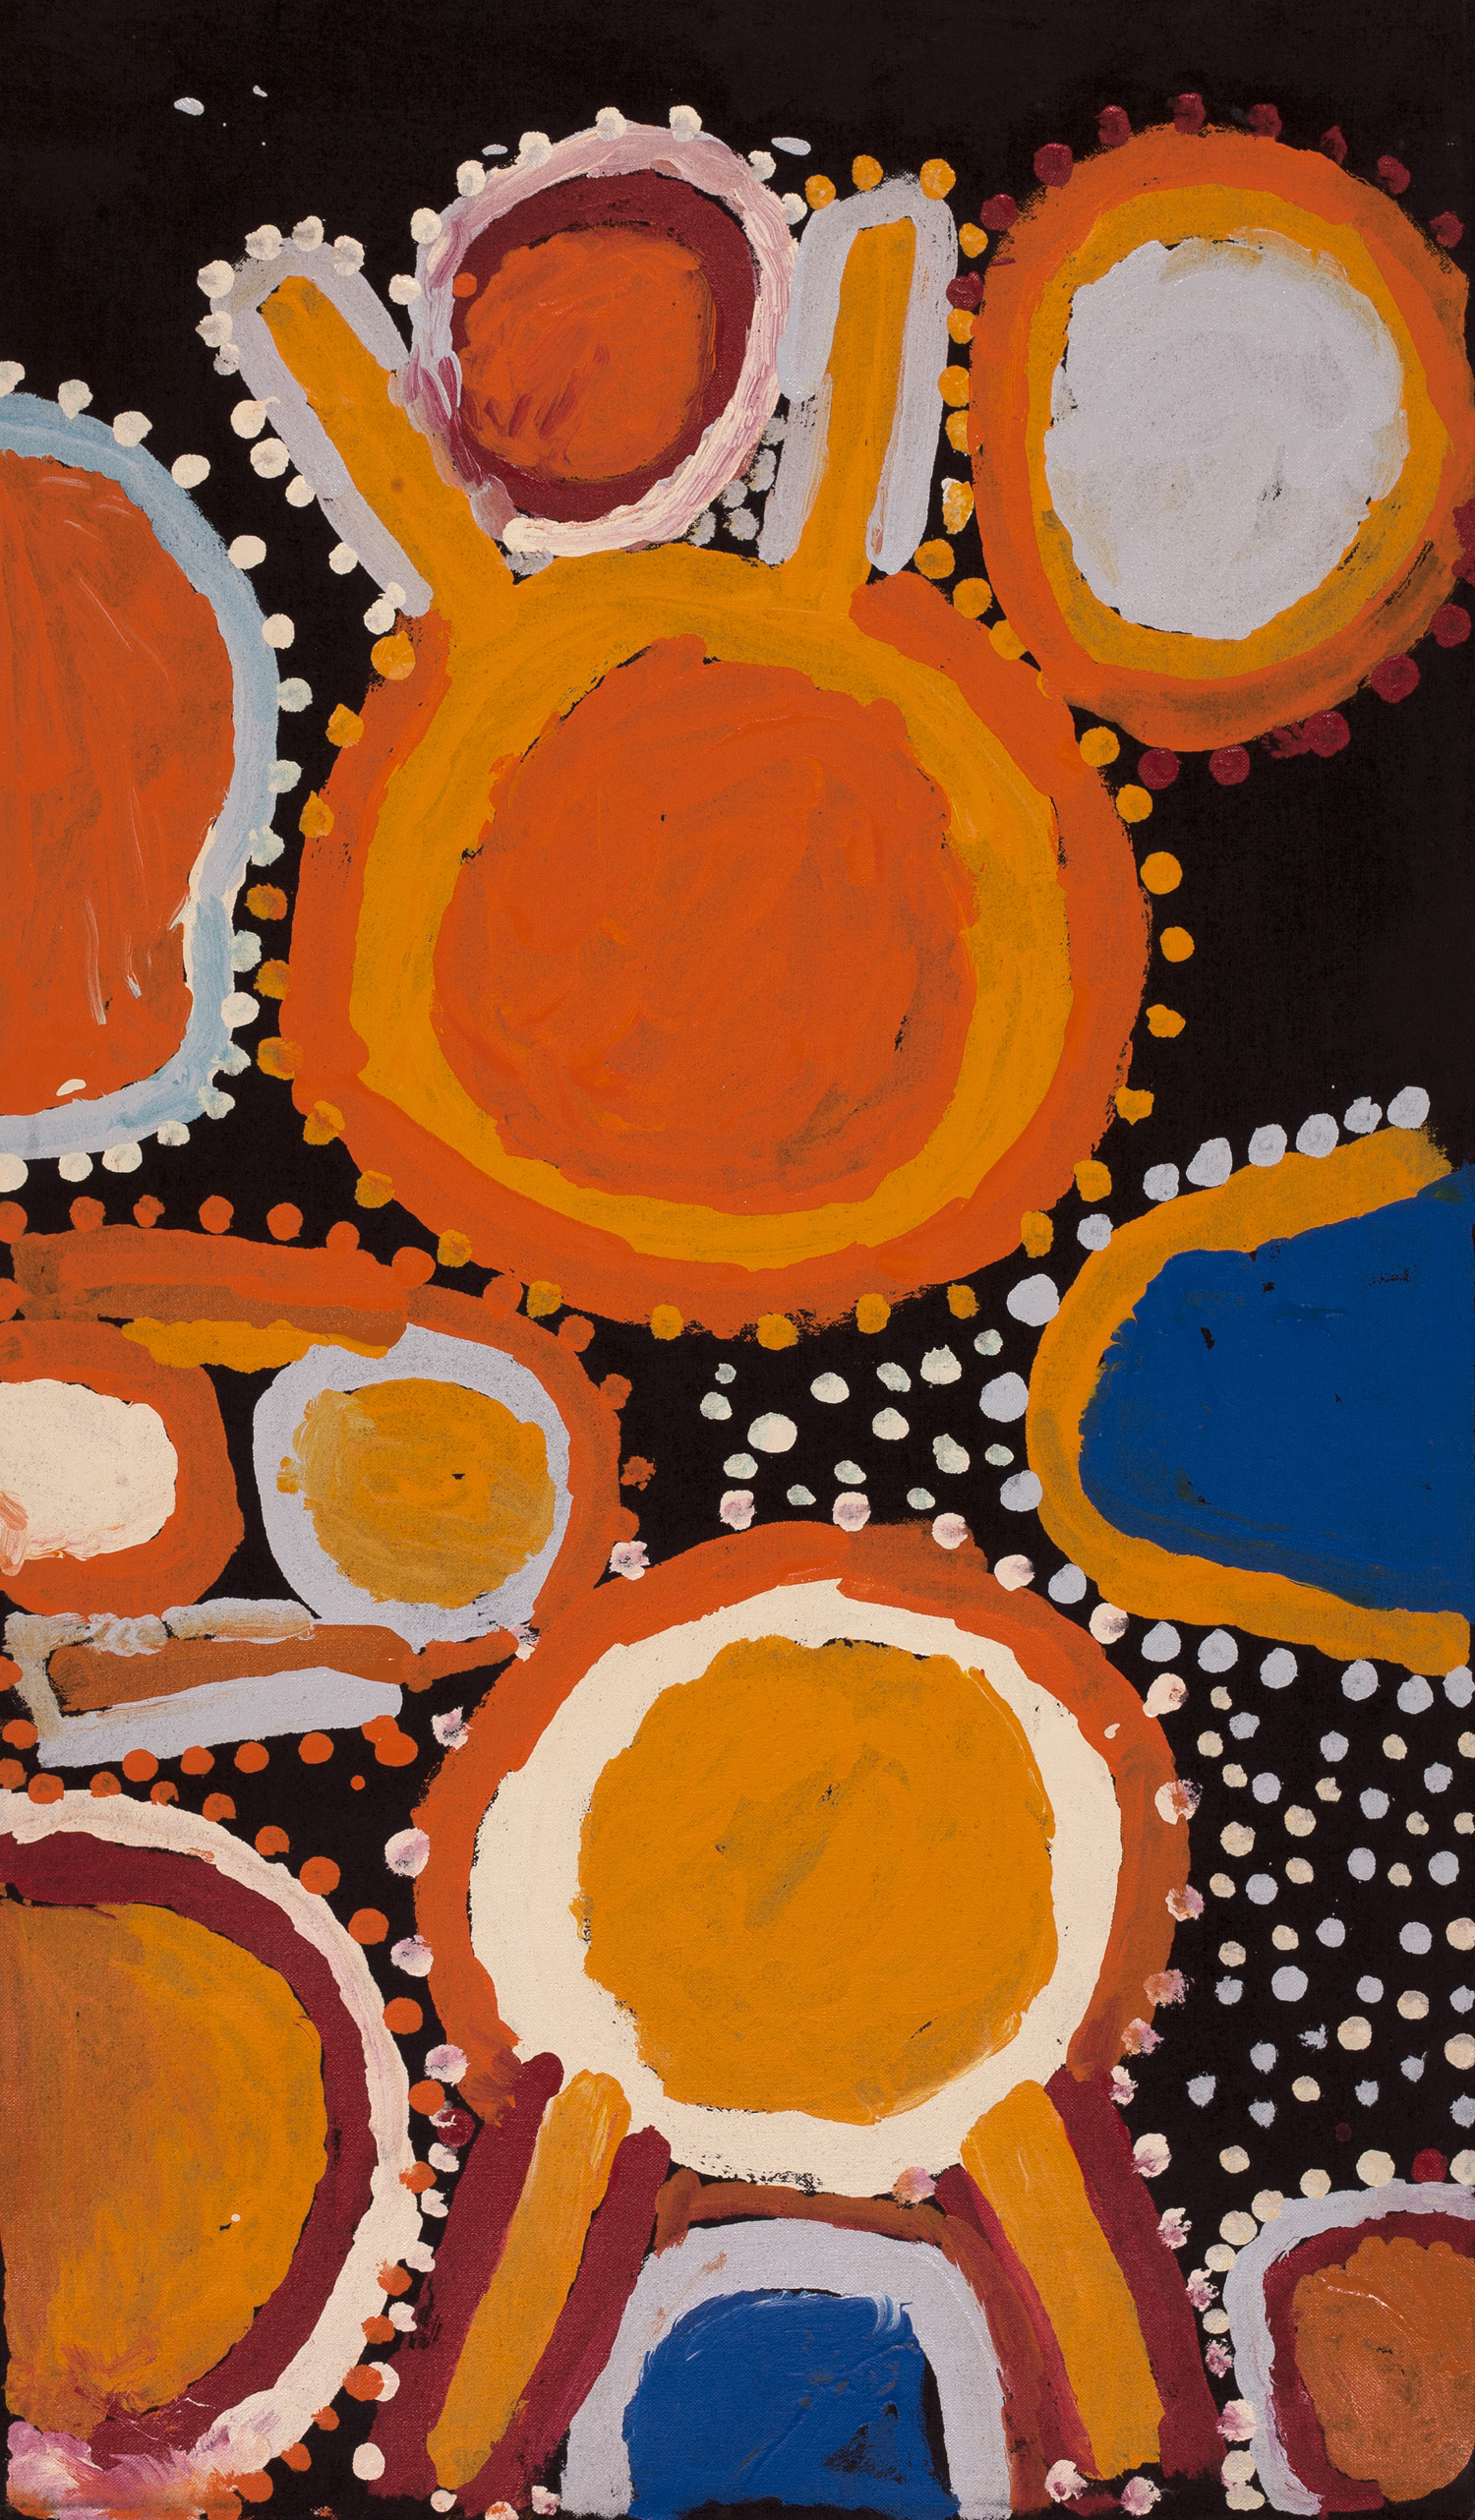 Sandy Brumby  Untitled  42 x 29 inches (107 x 61 cm) Acrylic on Belgian linen Ninuku Artists Catalog #11543   EMAIL INQUIRY